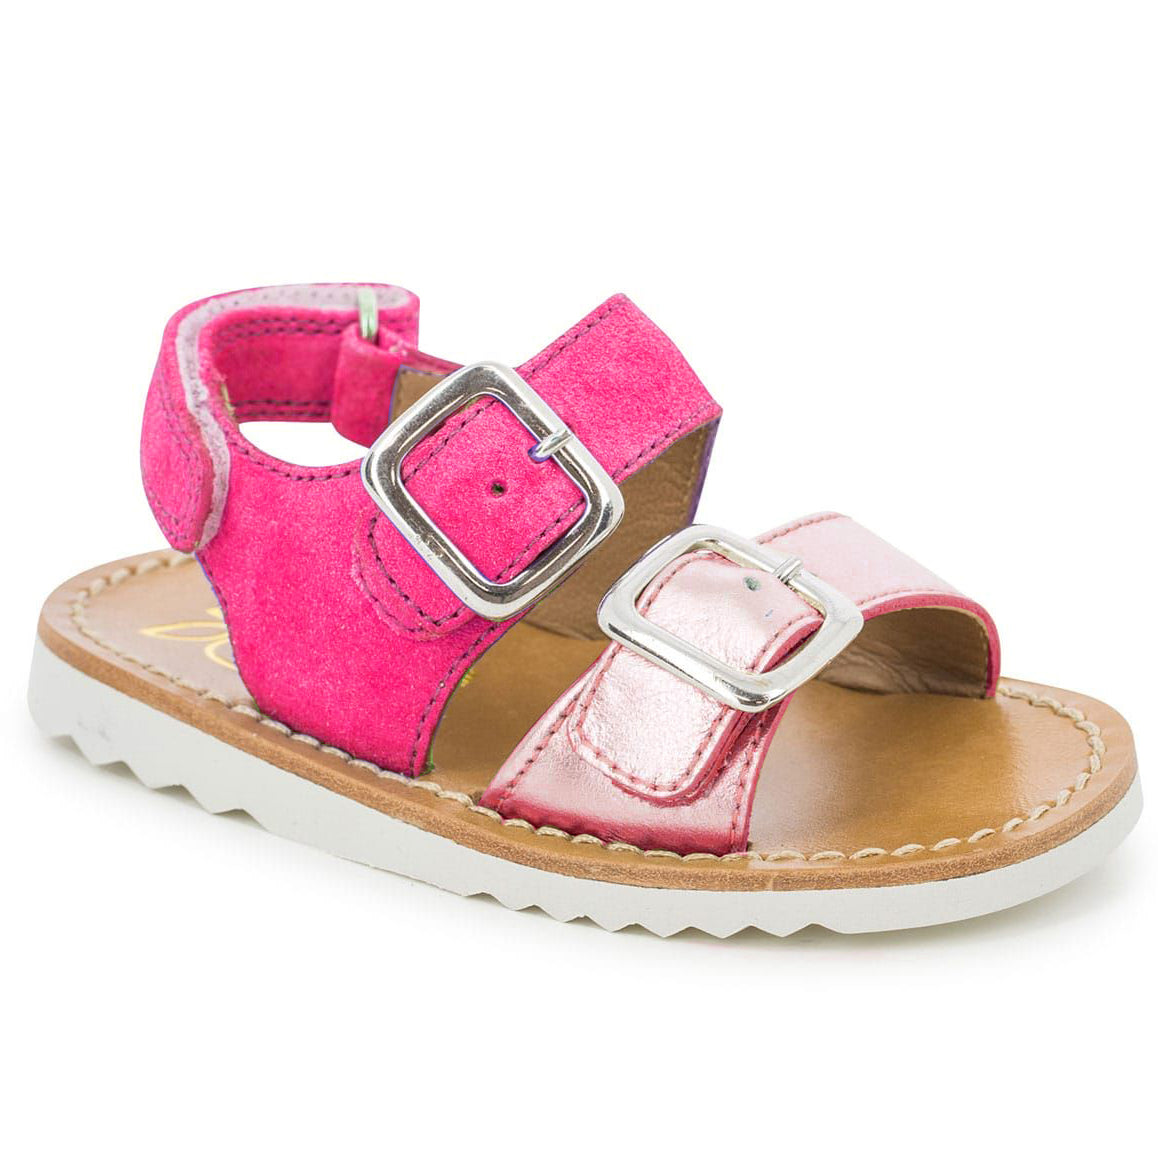 yoya kids pom d'api waff sandals buckles velcro strap summer casual shoes